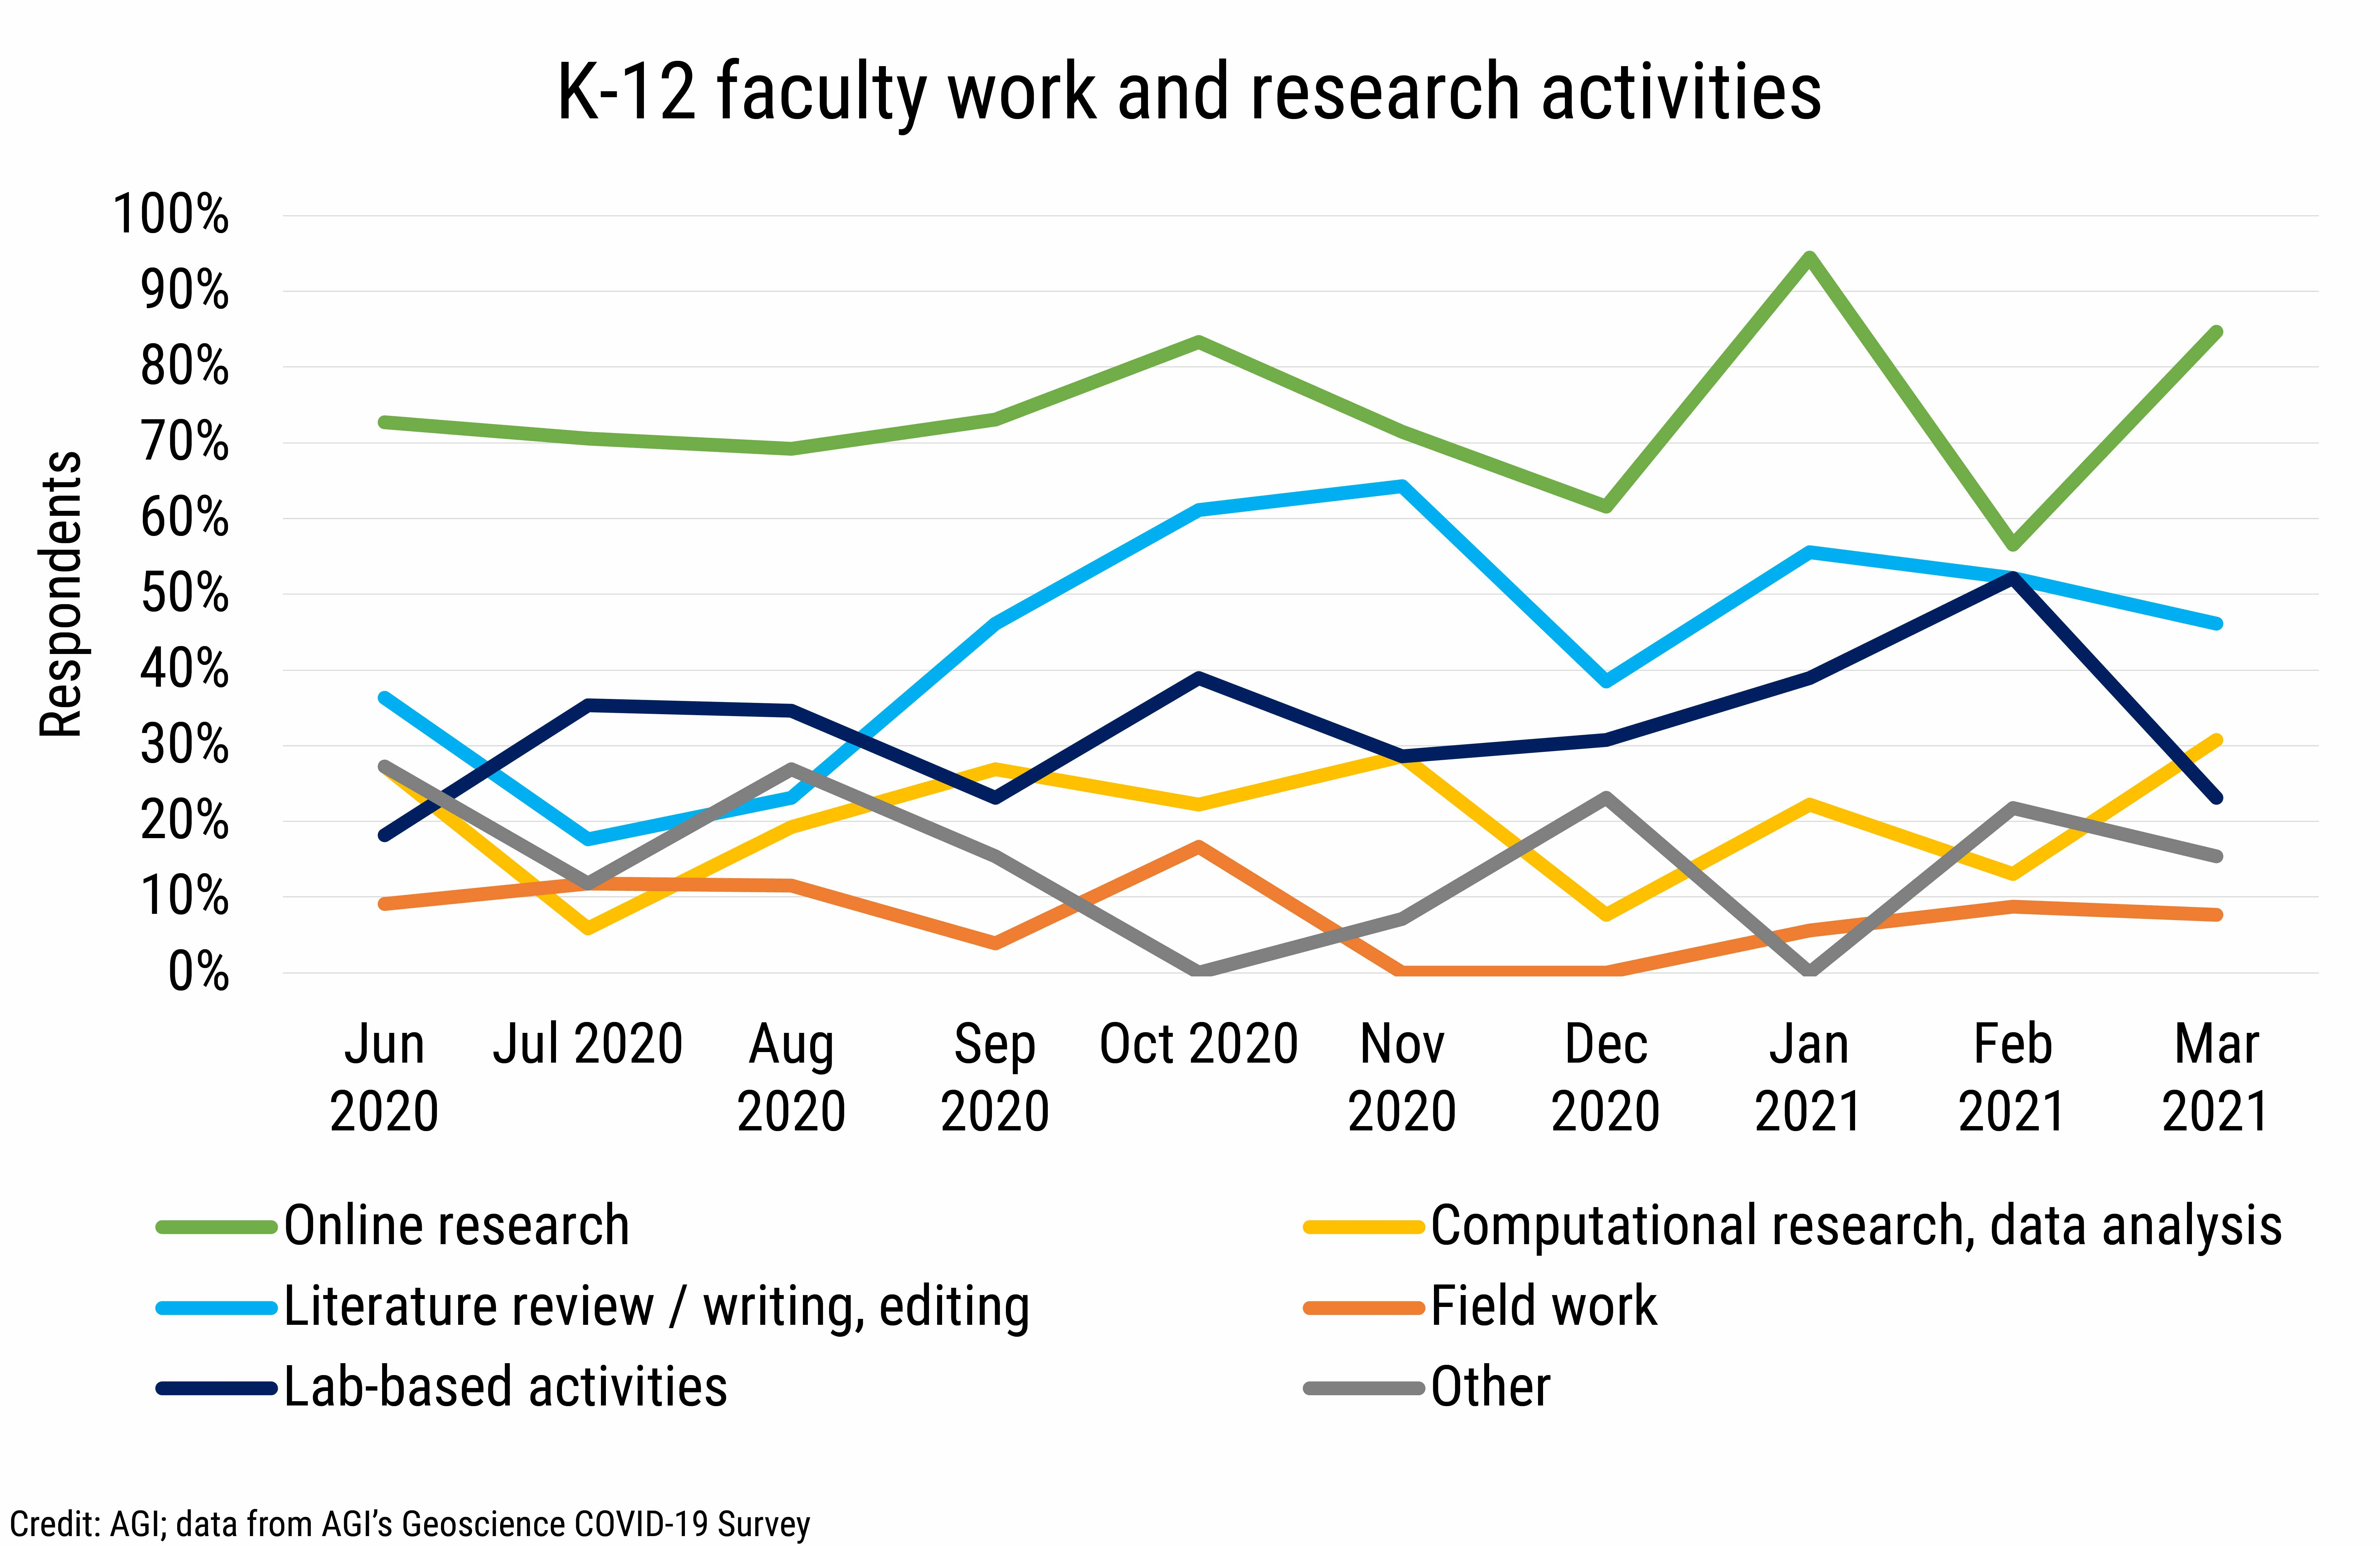 DB_2021-013 chart 03: K-12 faculty work and research activities (Credit: AGI; data from AGI's Geoscience COVID-19 Survey)